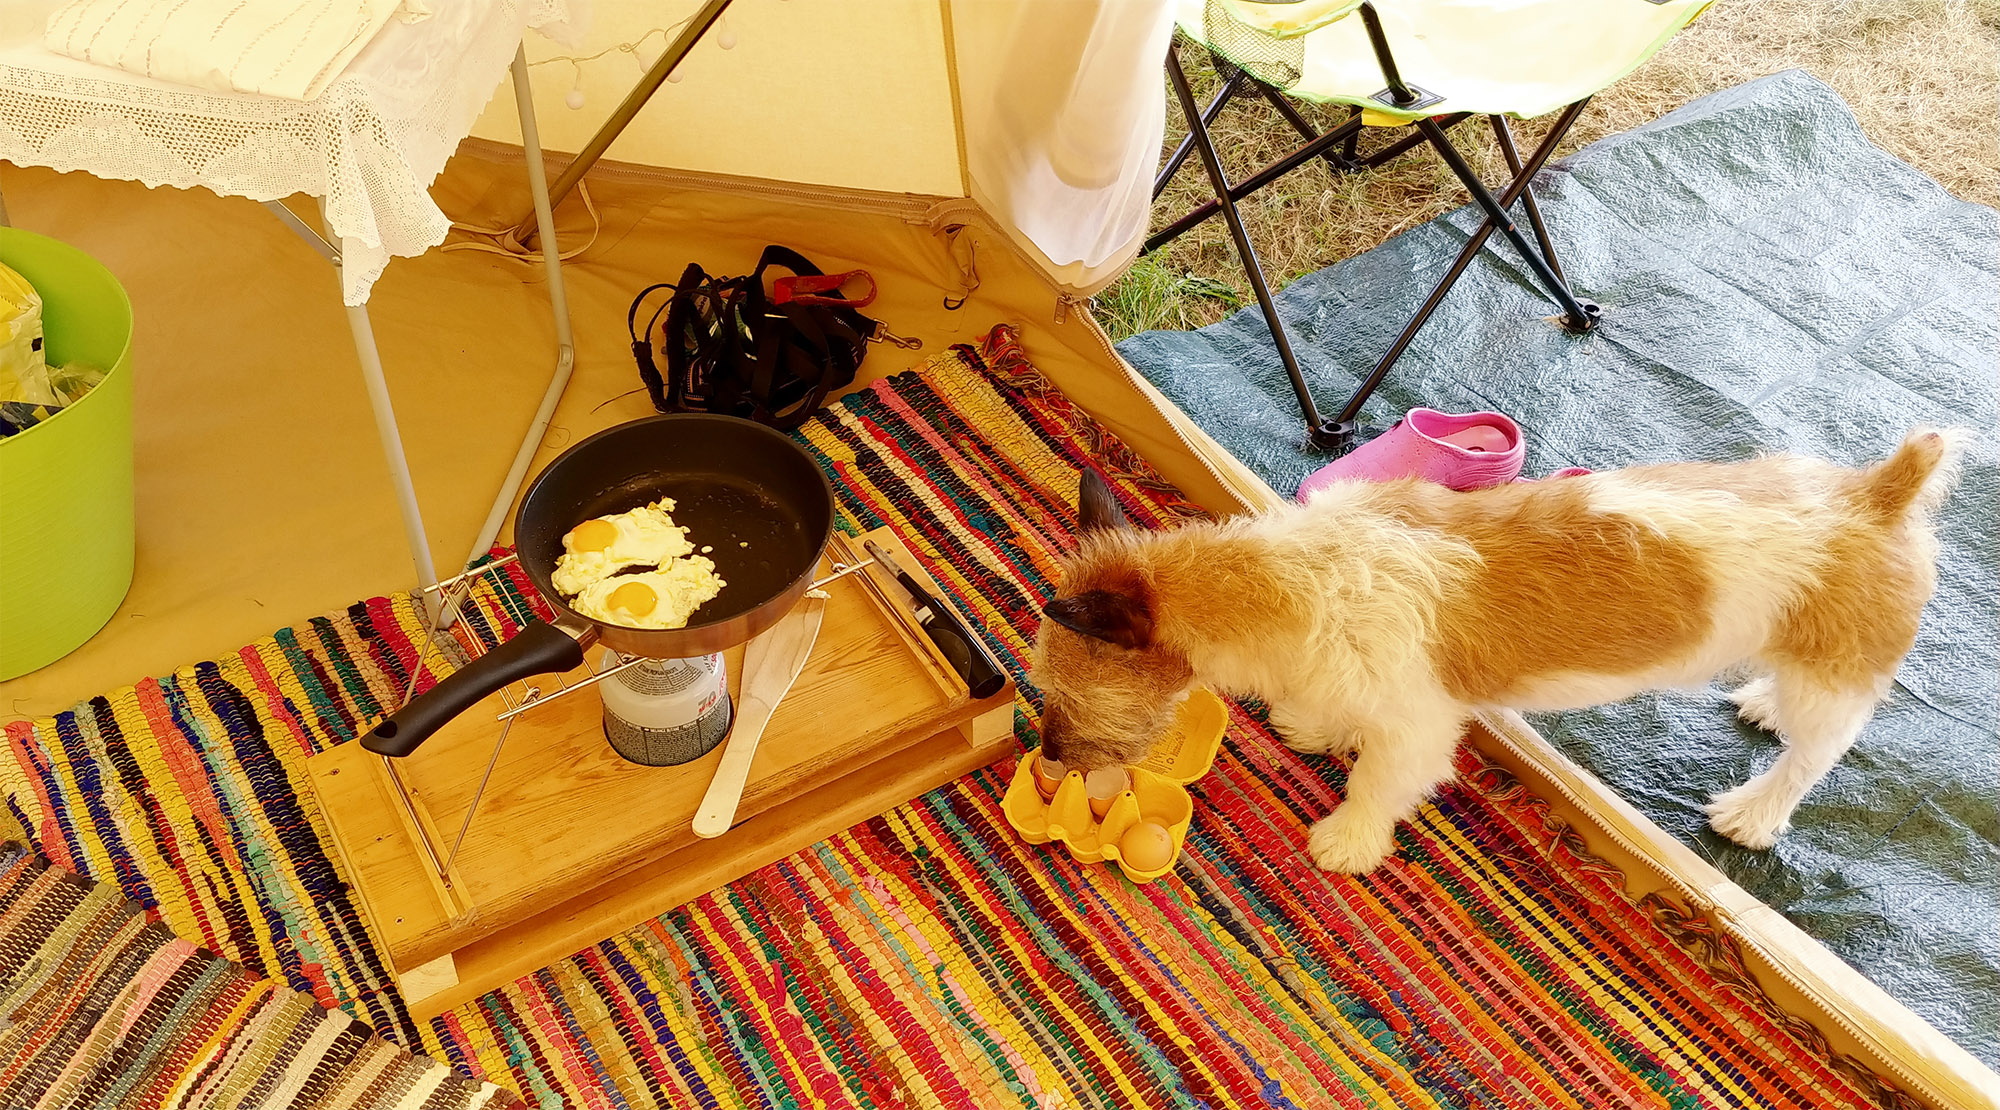 Frying eggs for breakfast, with the help of a naughty furry cleaner-upper.